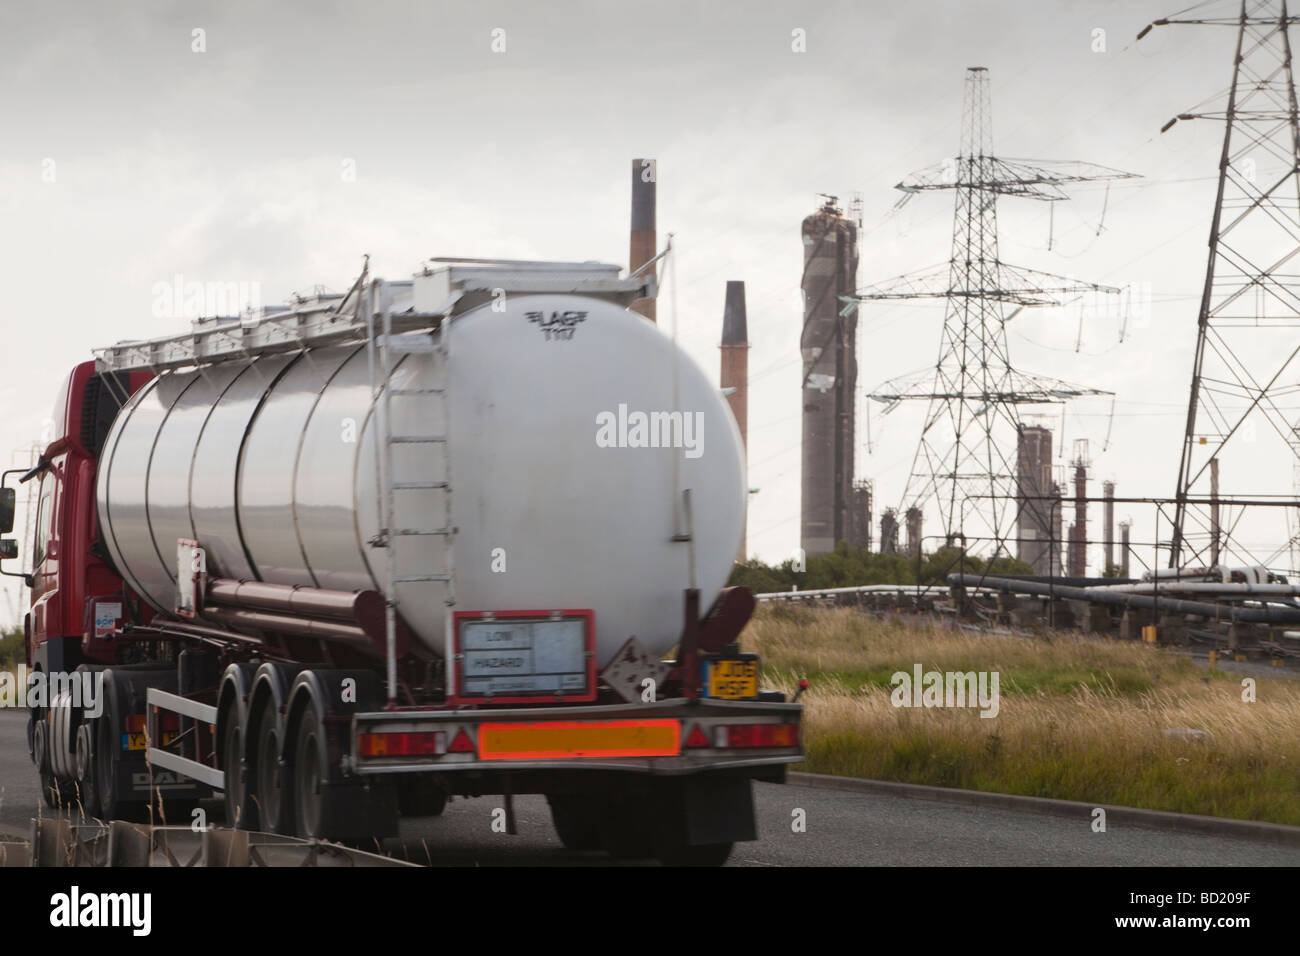 Heavy industry on Teeside, UK. - Stock Image